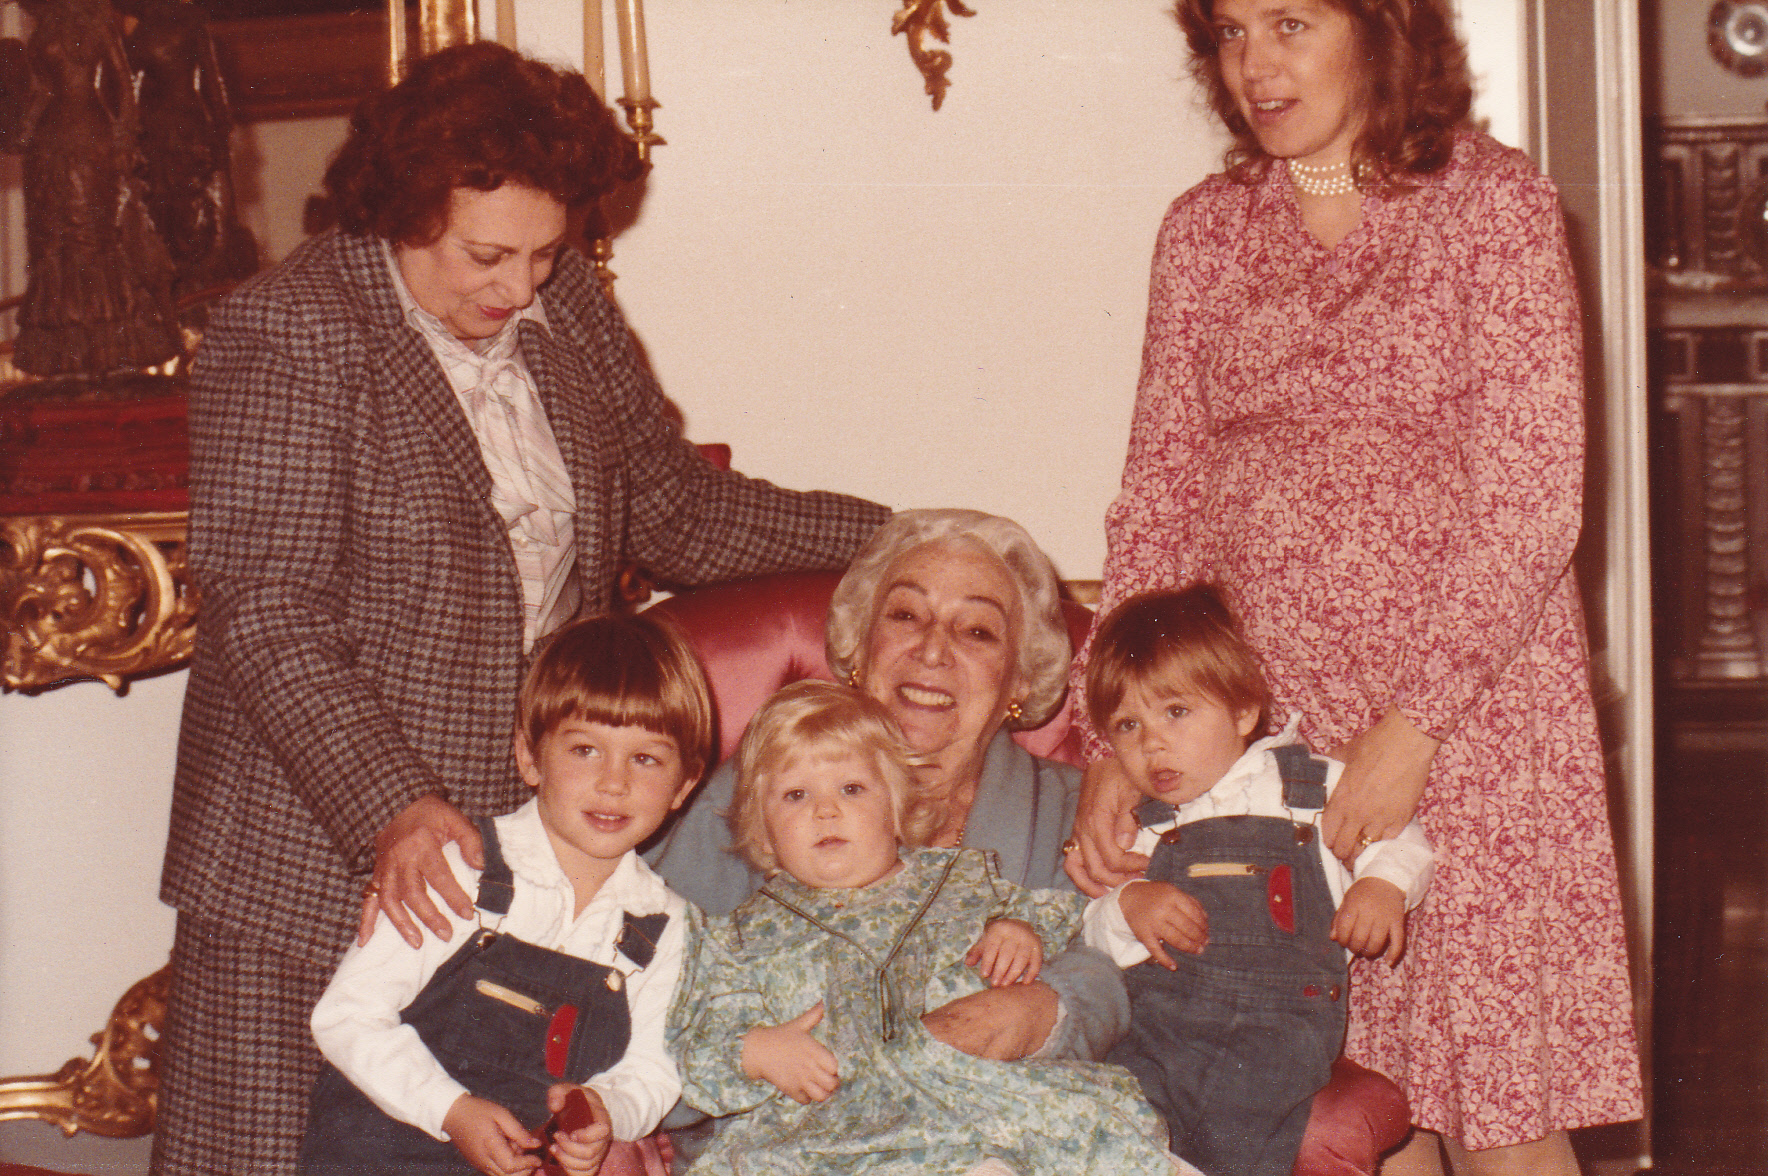 Lucy Cannon with her mother Tina de Forcade and her daughter Tina Carignani. Also pictured are Tina's sons Carlo and Francesco and me with a turkey neck. Ha.